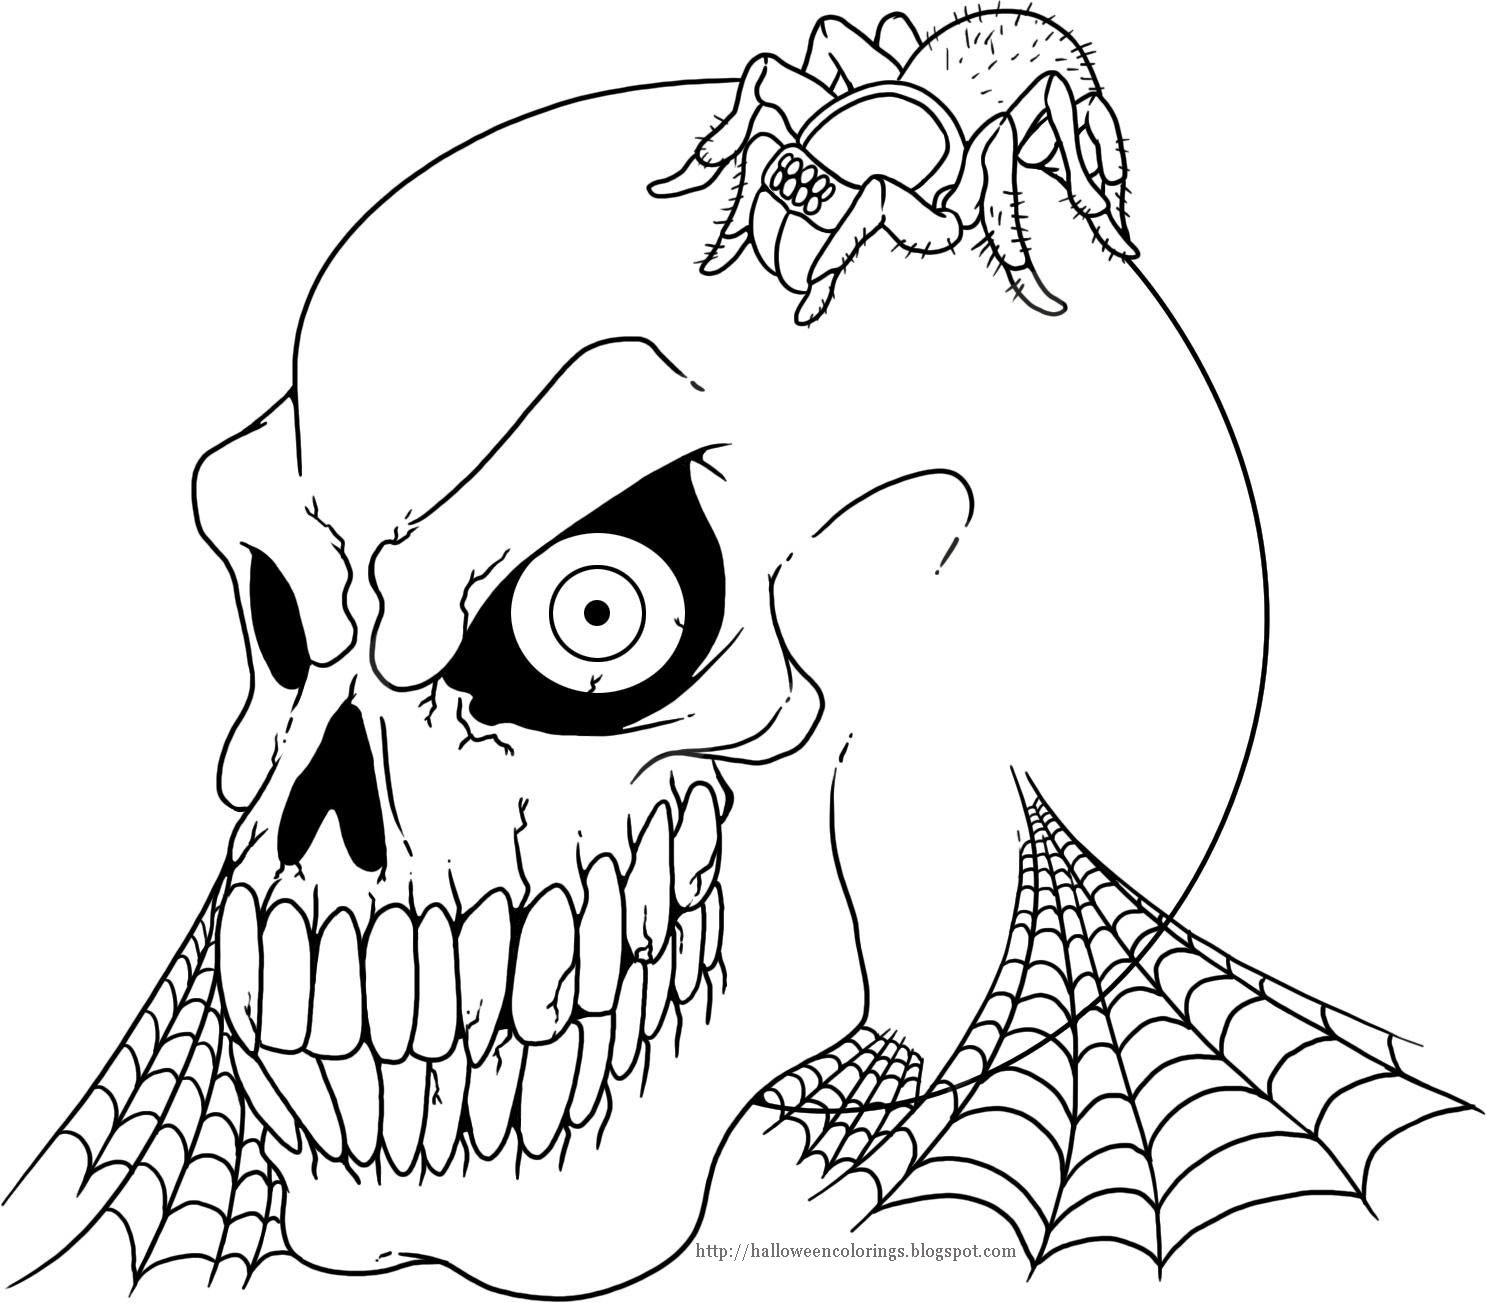 printable halloween coloring pages halloween colorings halloween pages printable coloring